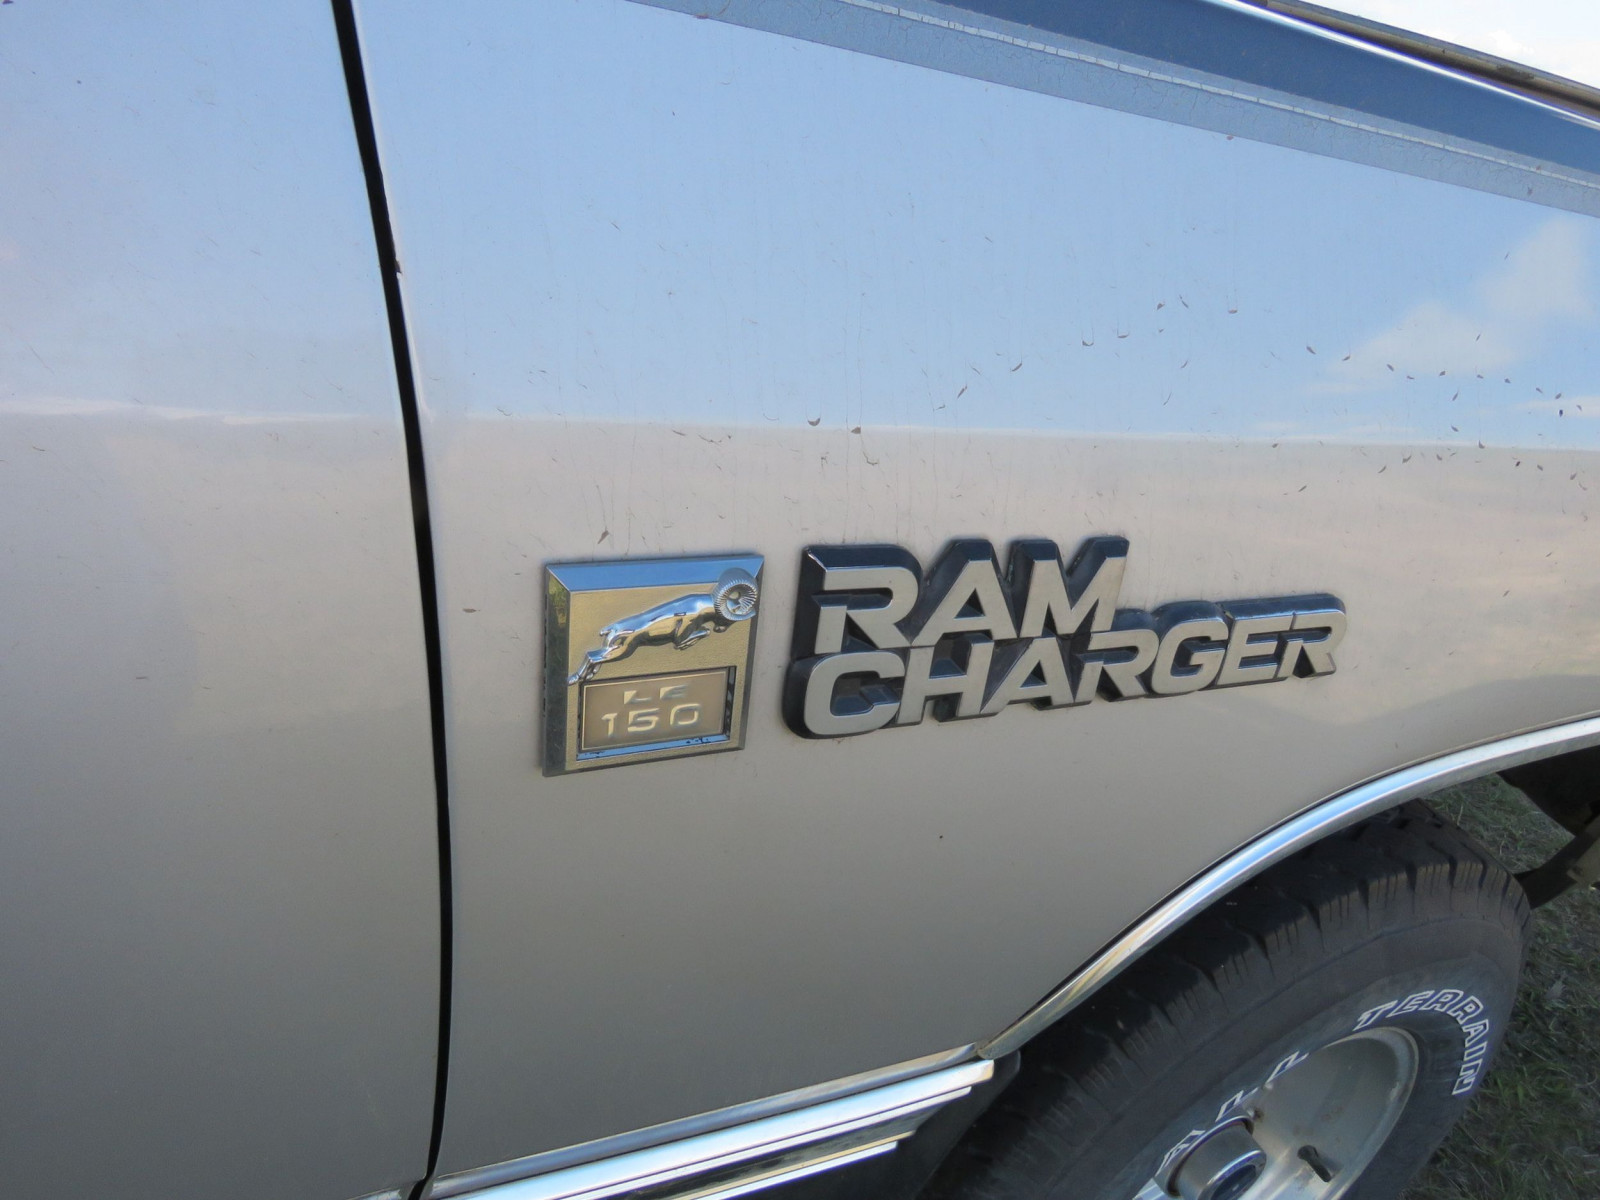 1990 Dodge Ram Charger Pickup - Image 3